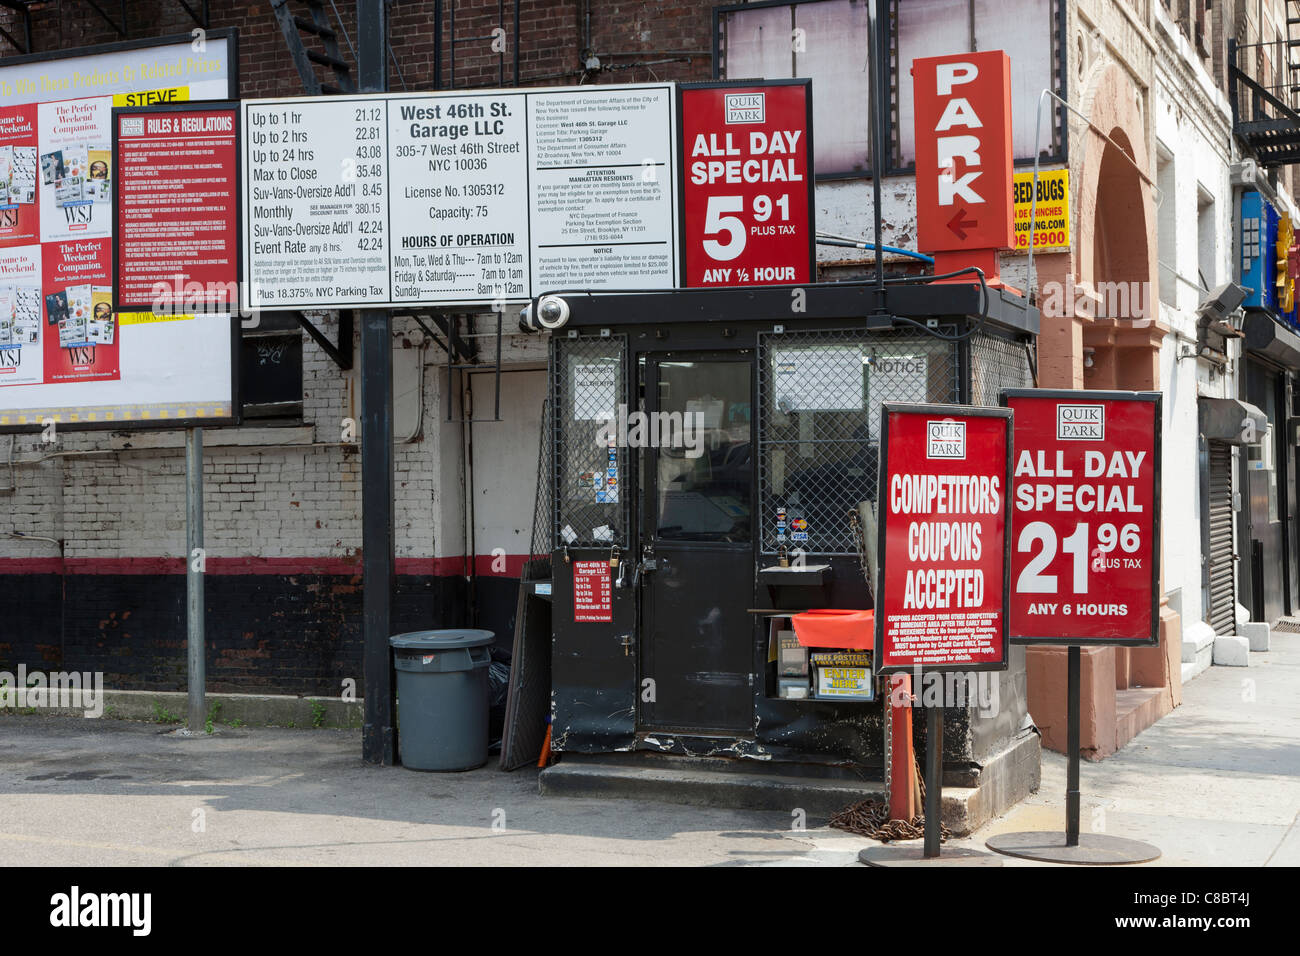 A parking lot on 46th Street in Manhattan in New York City. - Stock Image